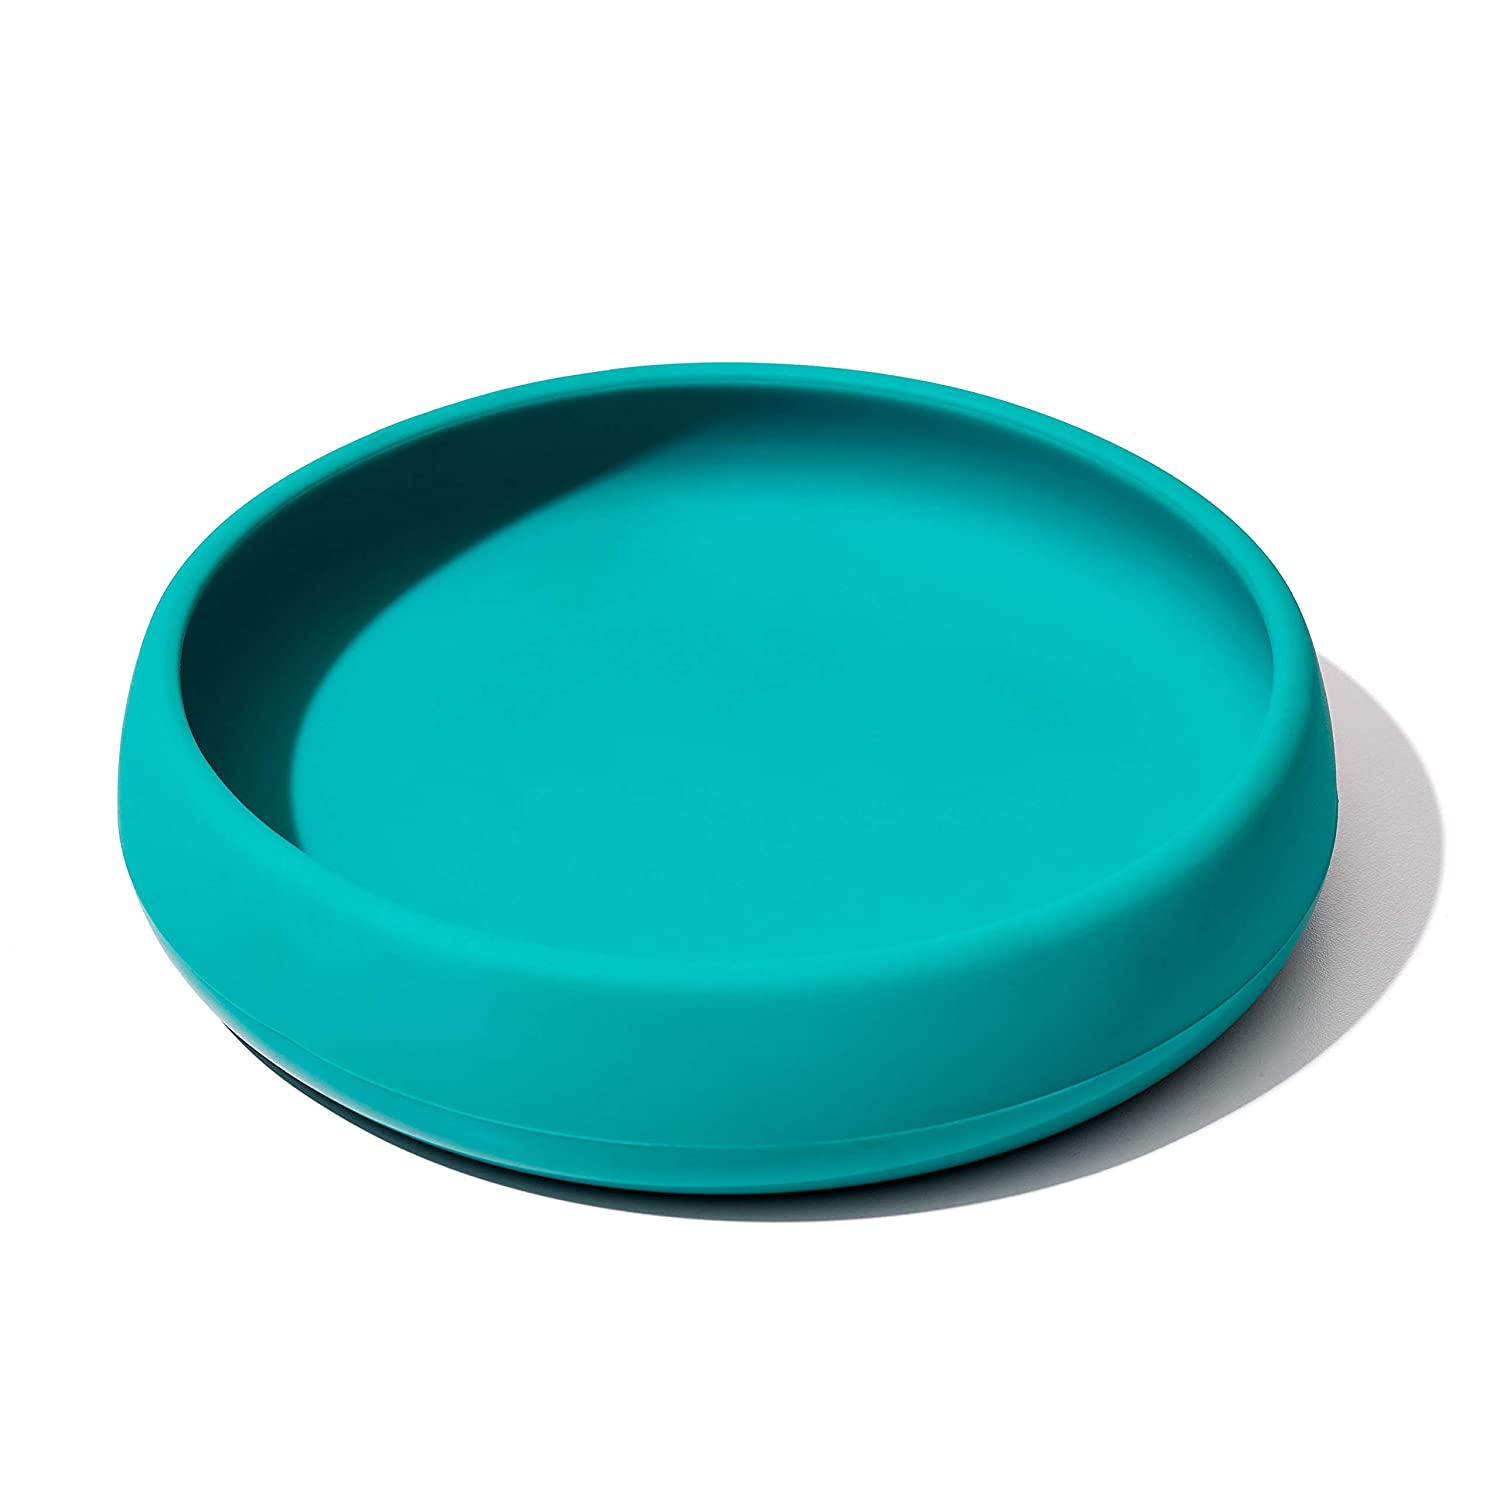 OXO Tot Silicone Plate Teal